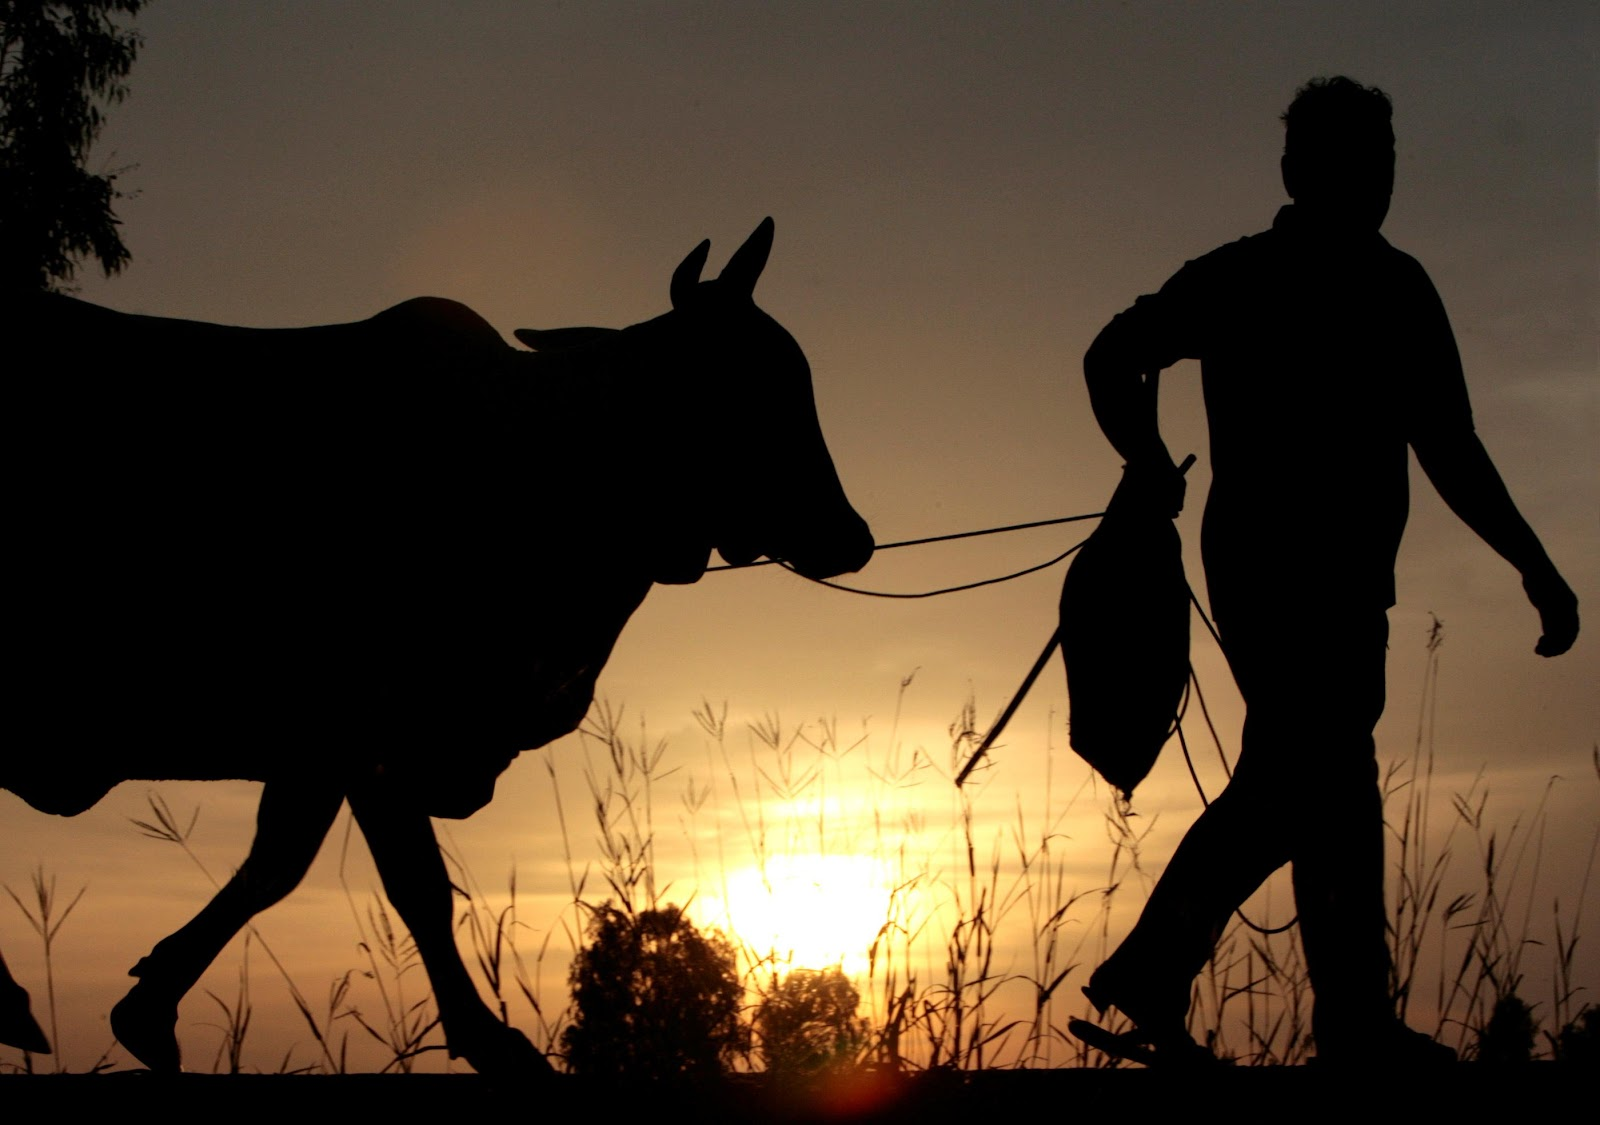 A farmer in Thailand walks his cattle back home as the sun sets on August 14, 2007. REUTERS/Sukree Sukplang